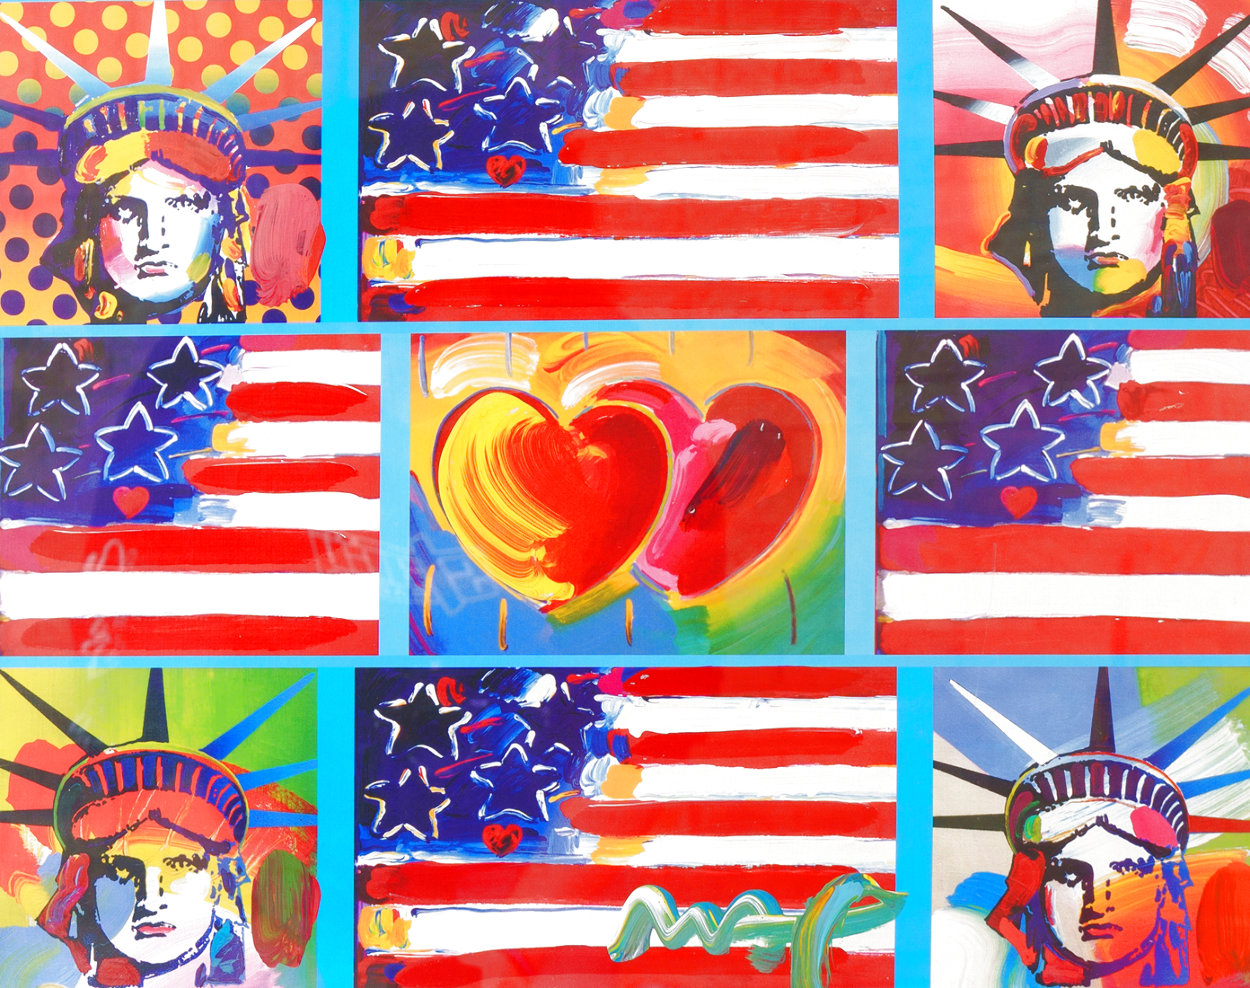 4 Liberties Unique 2007 28x32 Works on Paper (not prints) by Peter Max